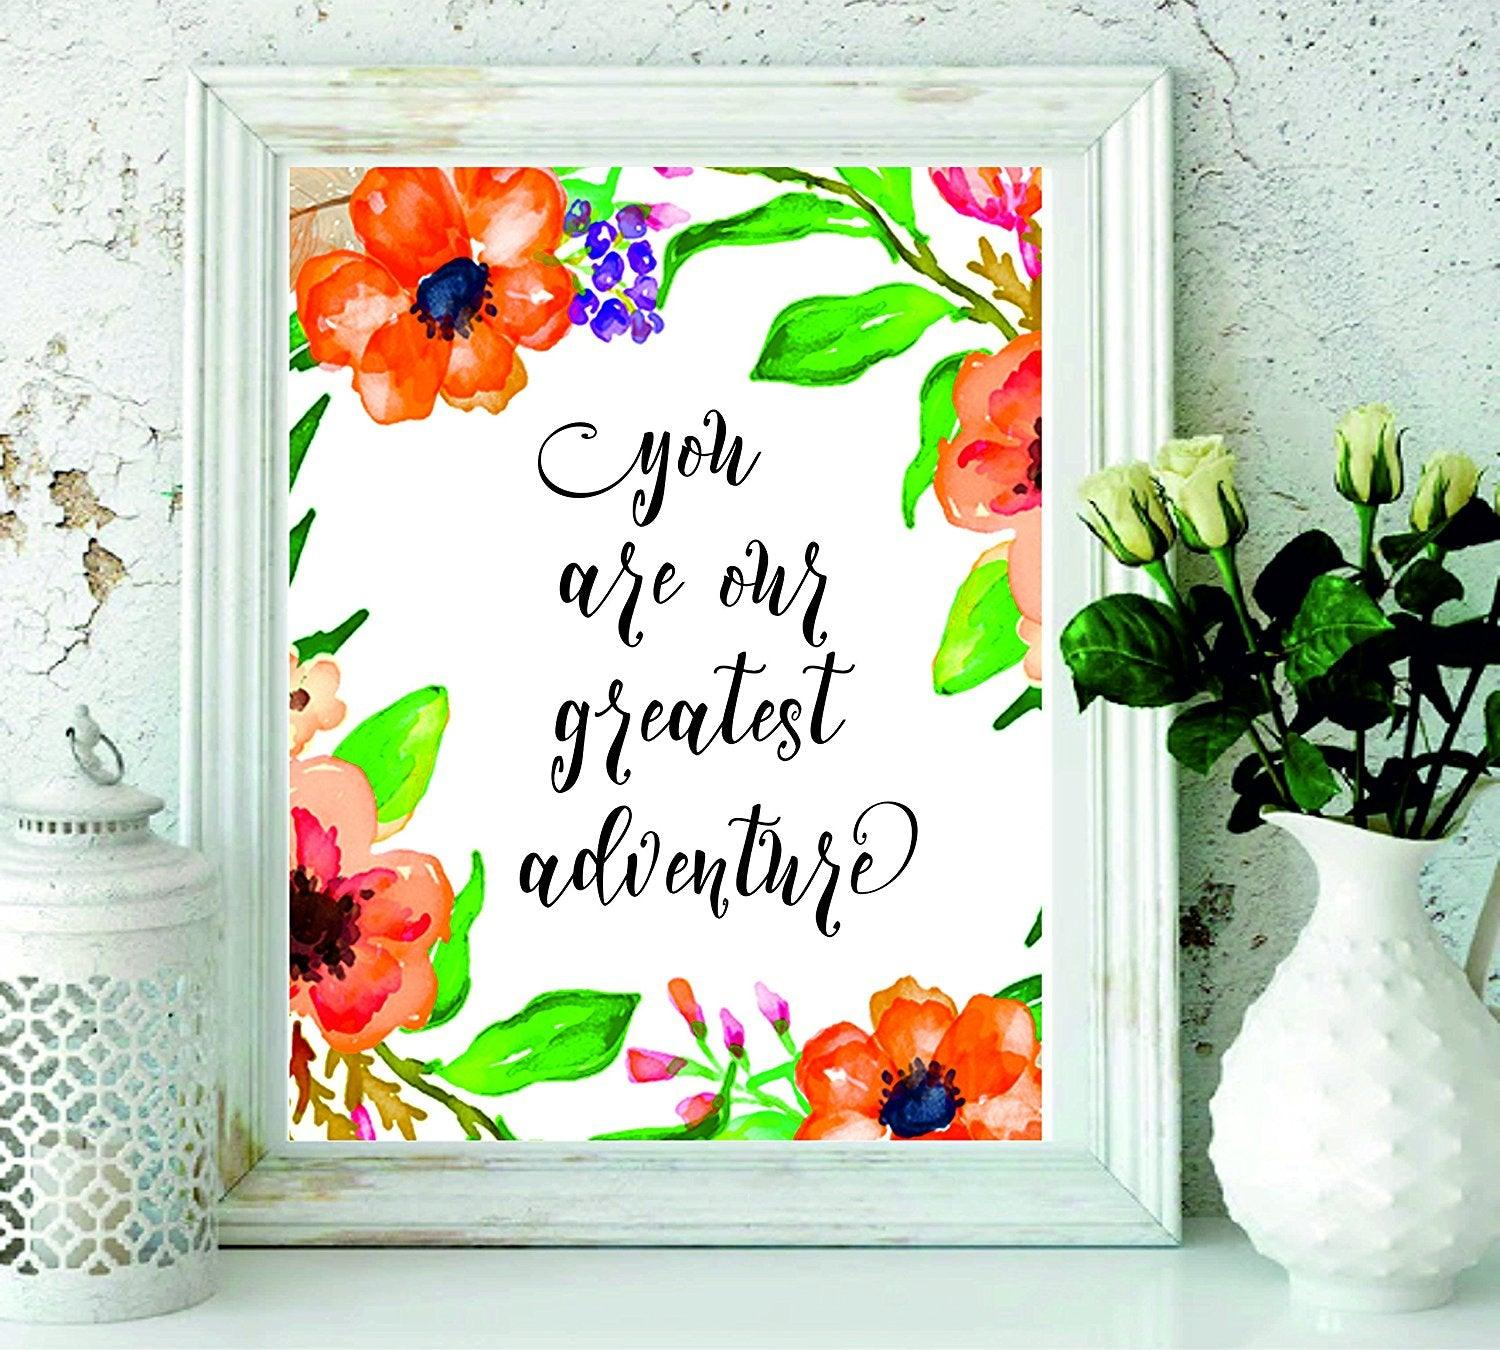 You Are Our Greatest Adventure - Wall Art - Playroom Décor - Travel Nursery Wall Art Print - baby girl nursery Wall Art - Home Decor - BOSTON CREATIVE COMPANY